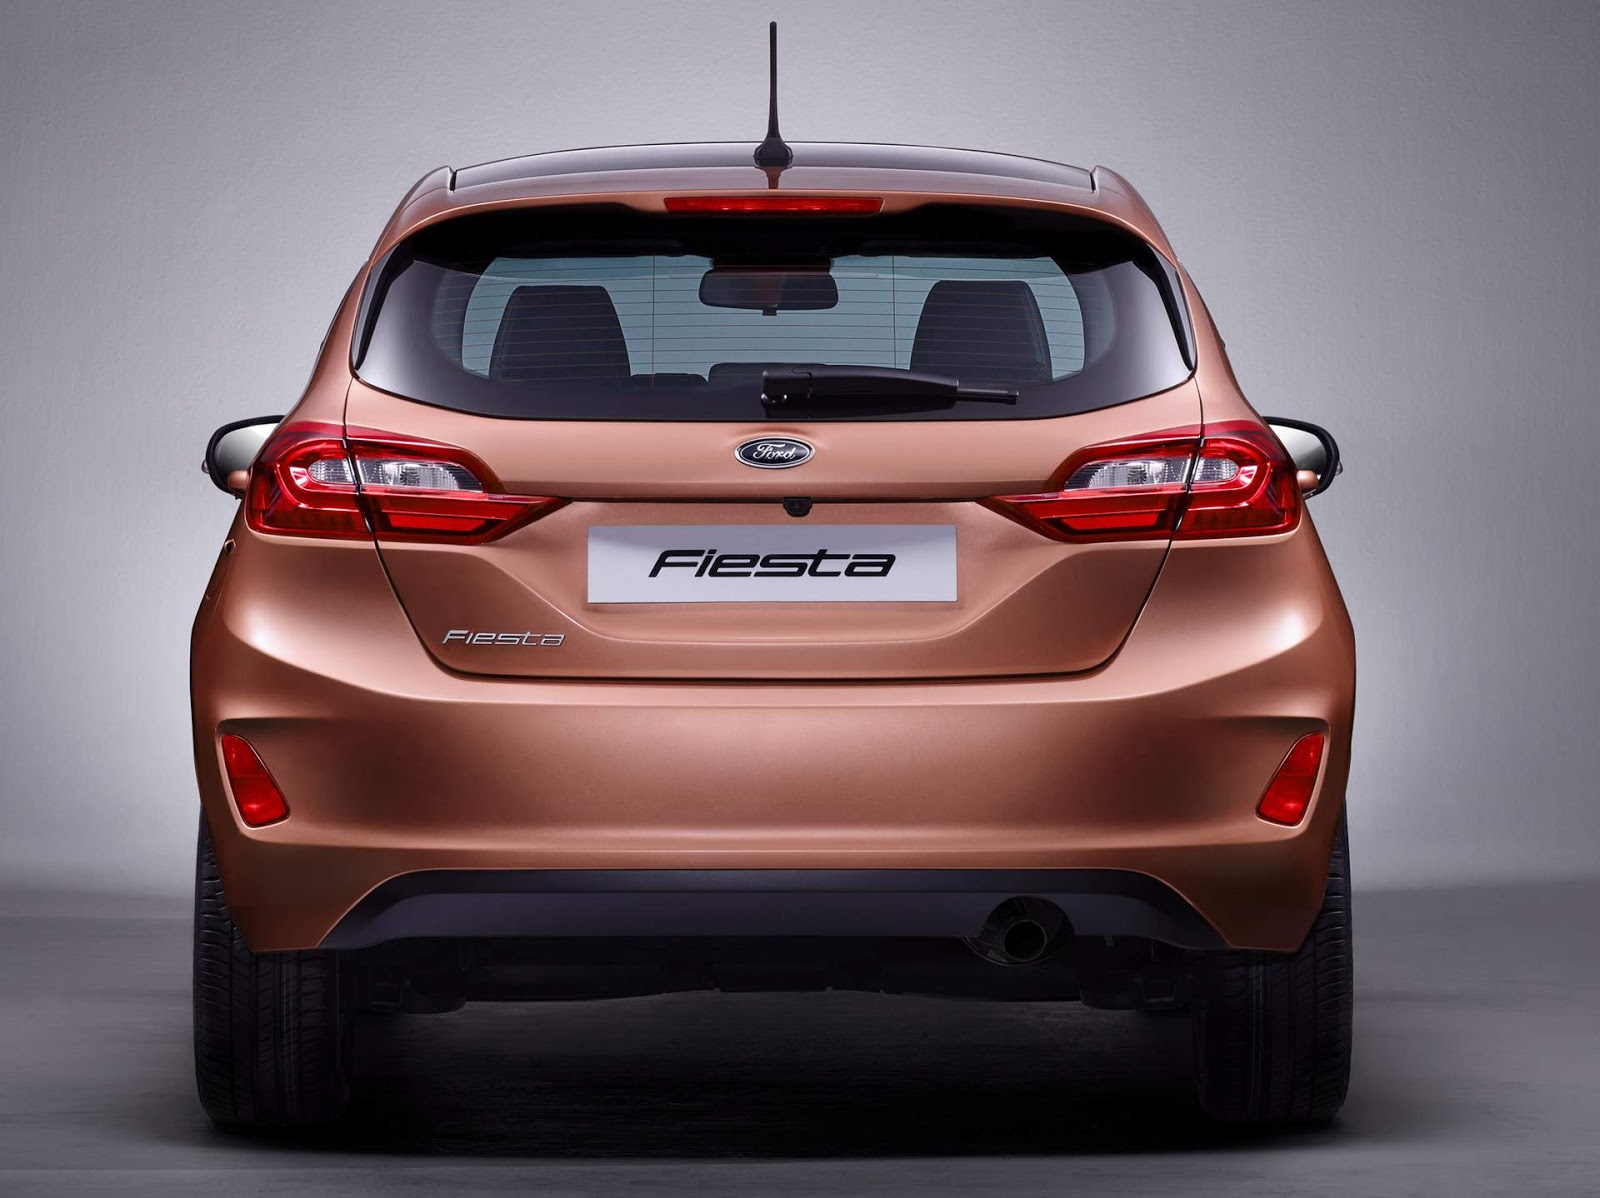 Ford New Fiesta 2018 hatch